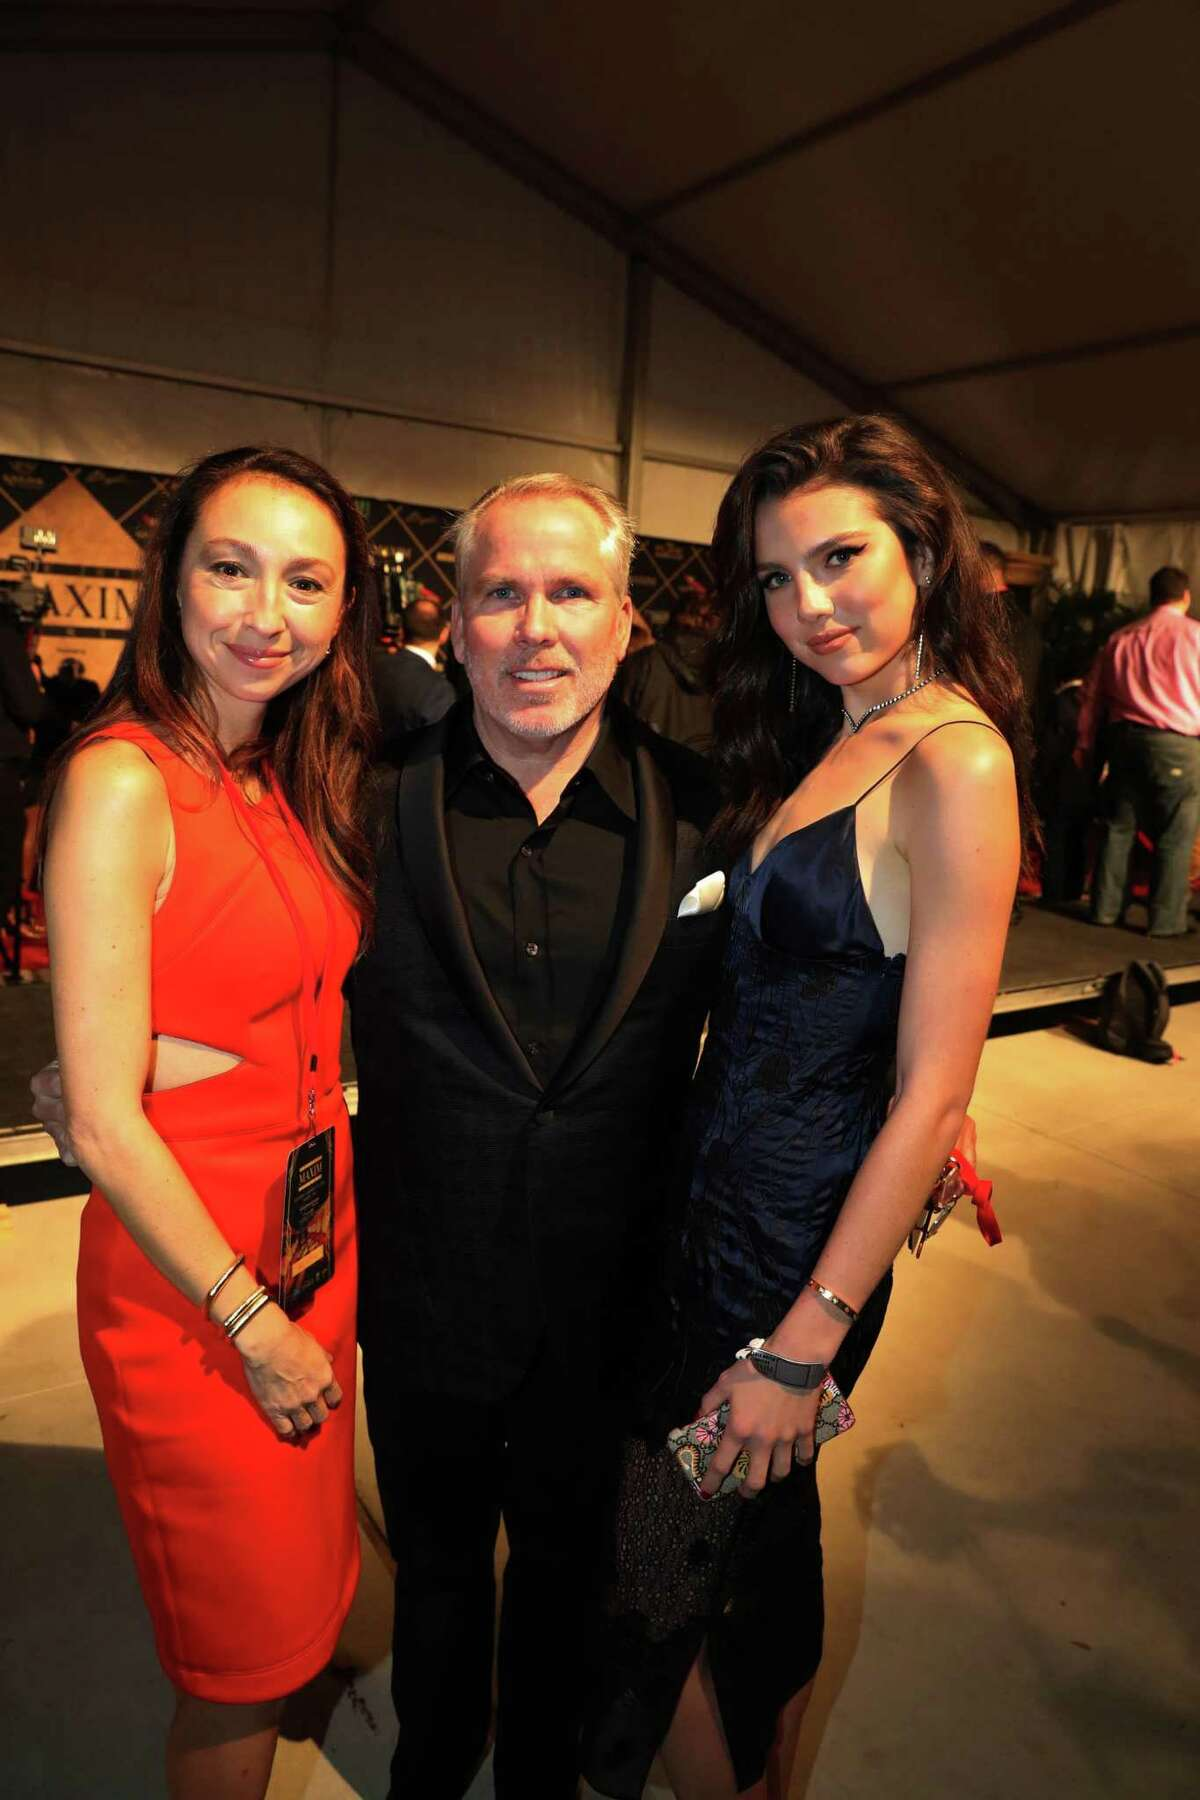 """Azteca Henry, personal-injury attorney Thomas J. Henry and Maya Henry attend the 2017 Maxim Super Bowl Party in 2017 in Sugar Land. In response to a divorce petition file by Azteca Henry, Thomas J. Henry had denied they had an """"informal marriage."""""""